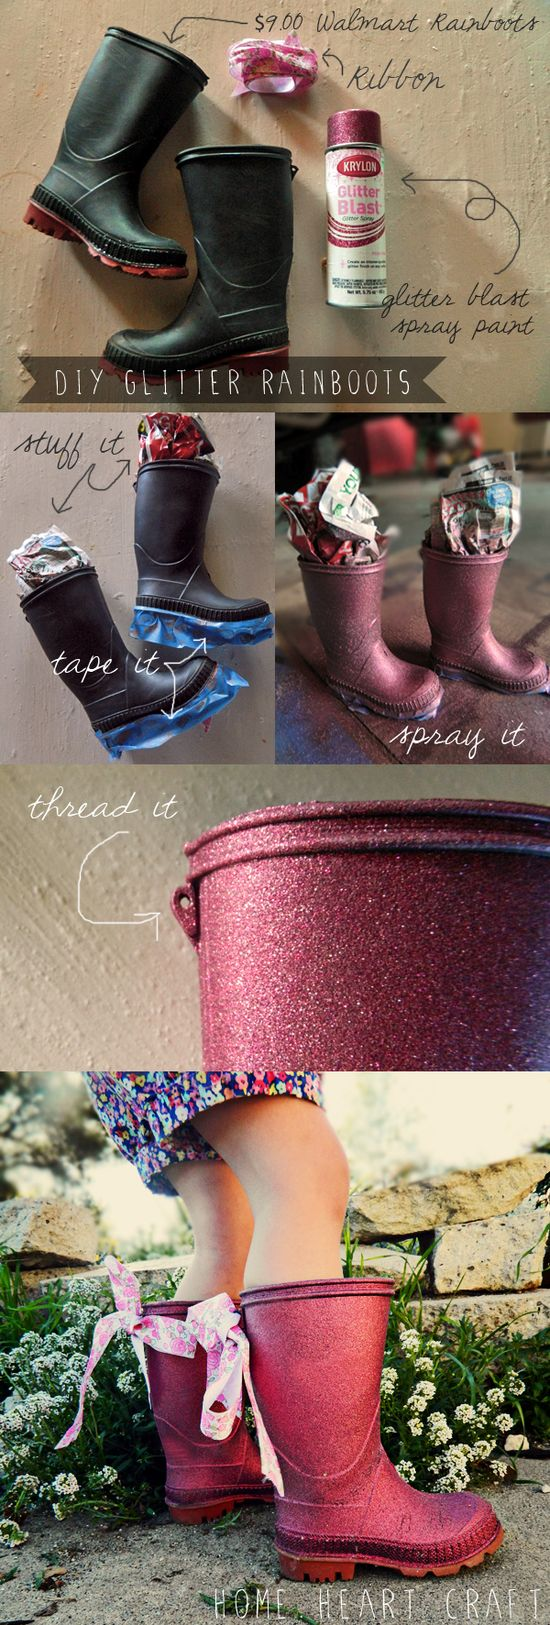 DIY Glitter Rain boots, so cute!  Totally making these for Fin and myself!!!